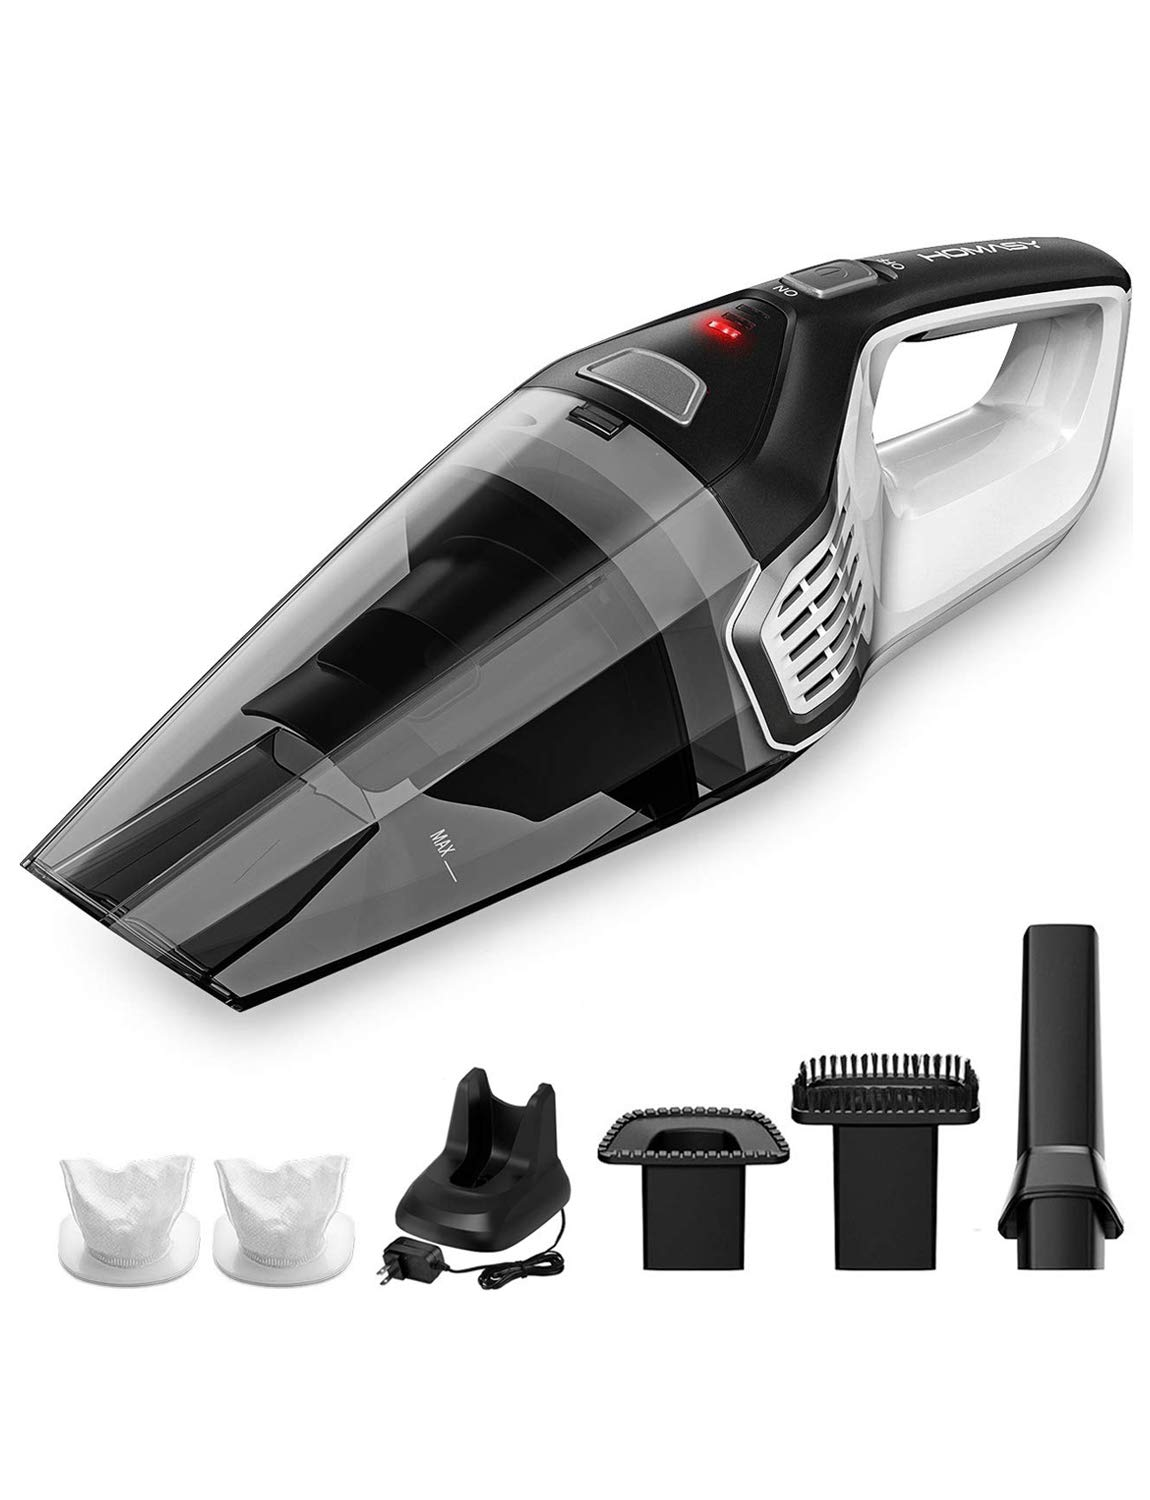 Top 9 Best Car Vacuum Carpet Cleaner (2020 Reviews & Buying Guide) 4